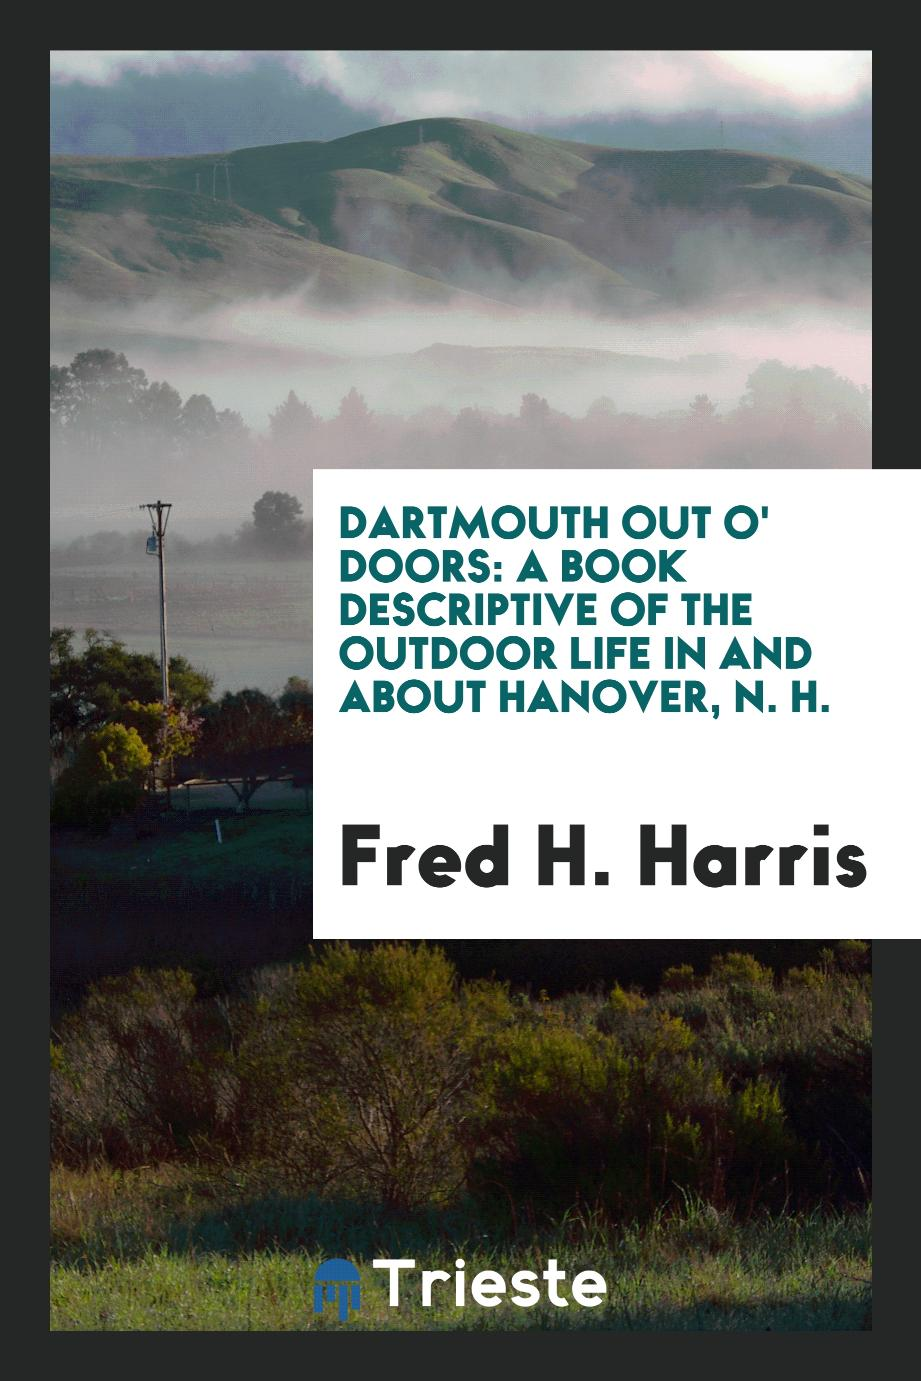 Dartmouth Out O' Doors: A Book Descriptive of the Outdoor Life in and About Hanover, N. H.